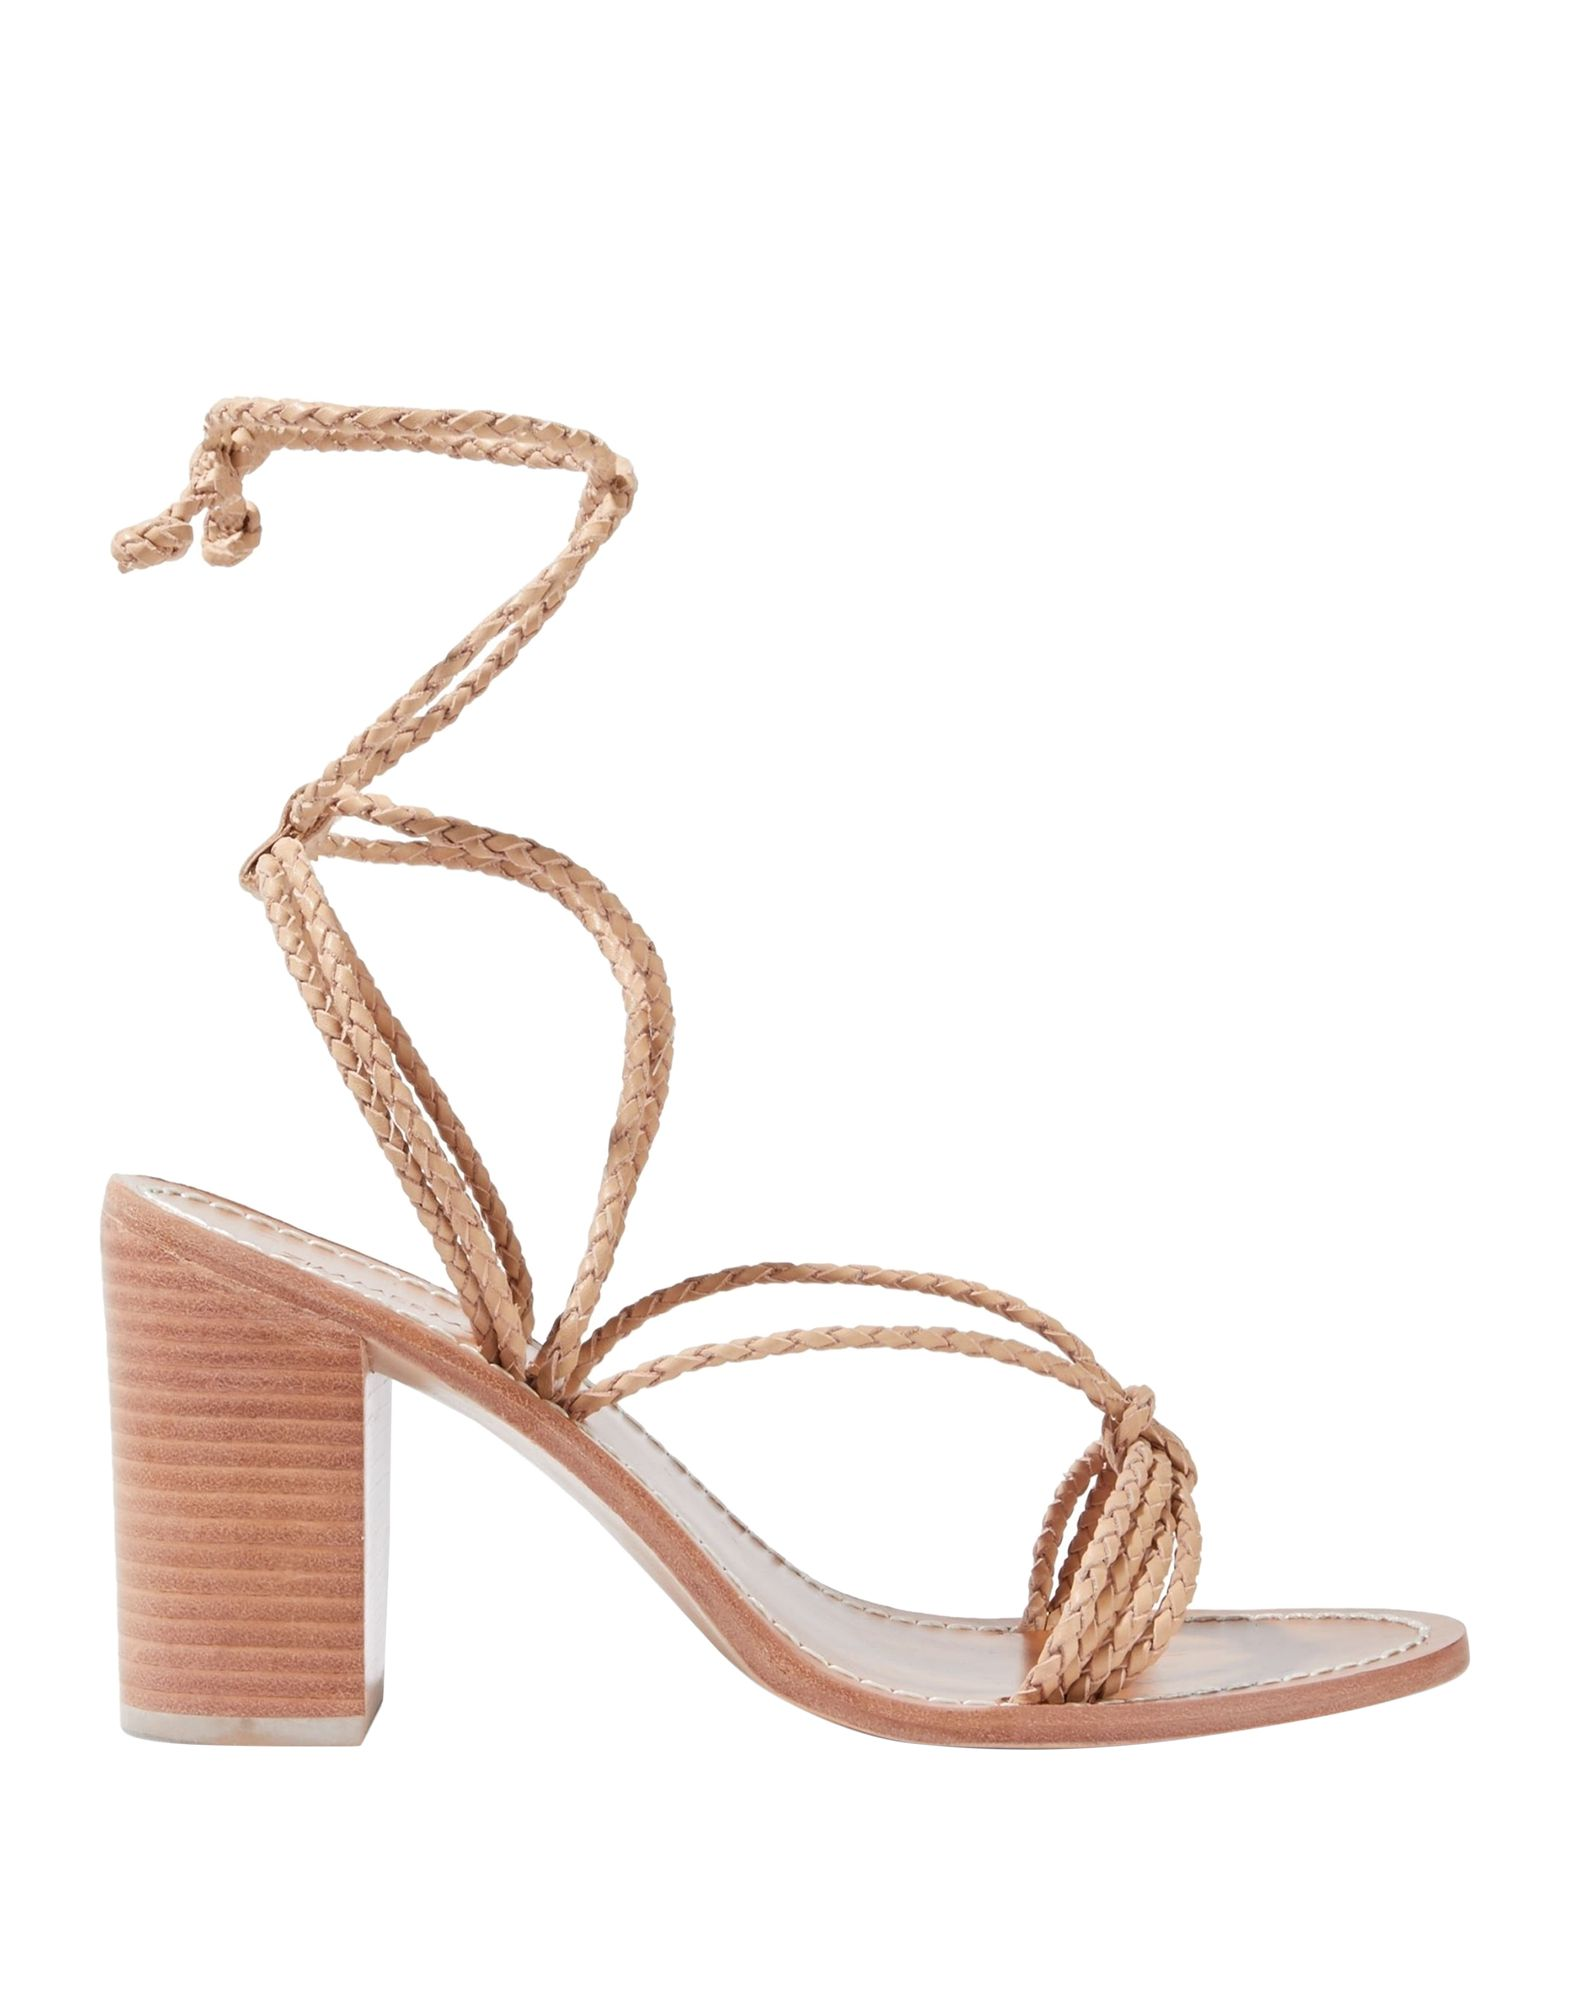 ZIMMERMANN Sandals. no appliqués, solid color, laces, round toeline, square heel, leather lining, leather sole, contains non-textile parts of animal origin. Soft Leather